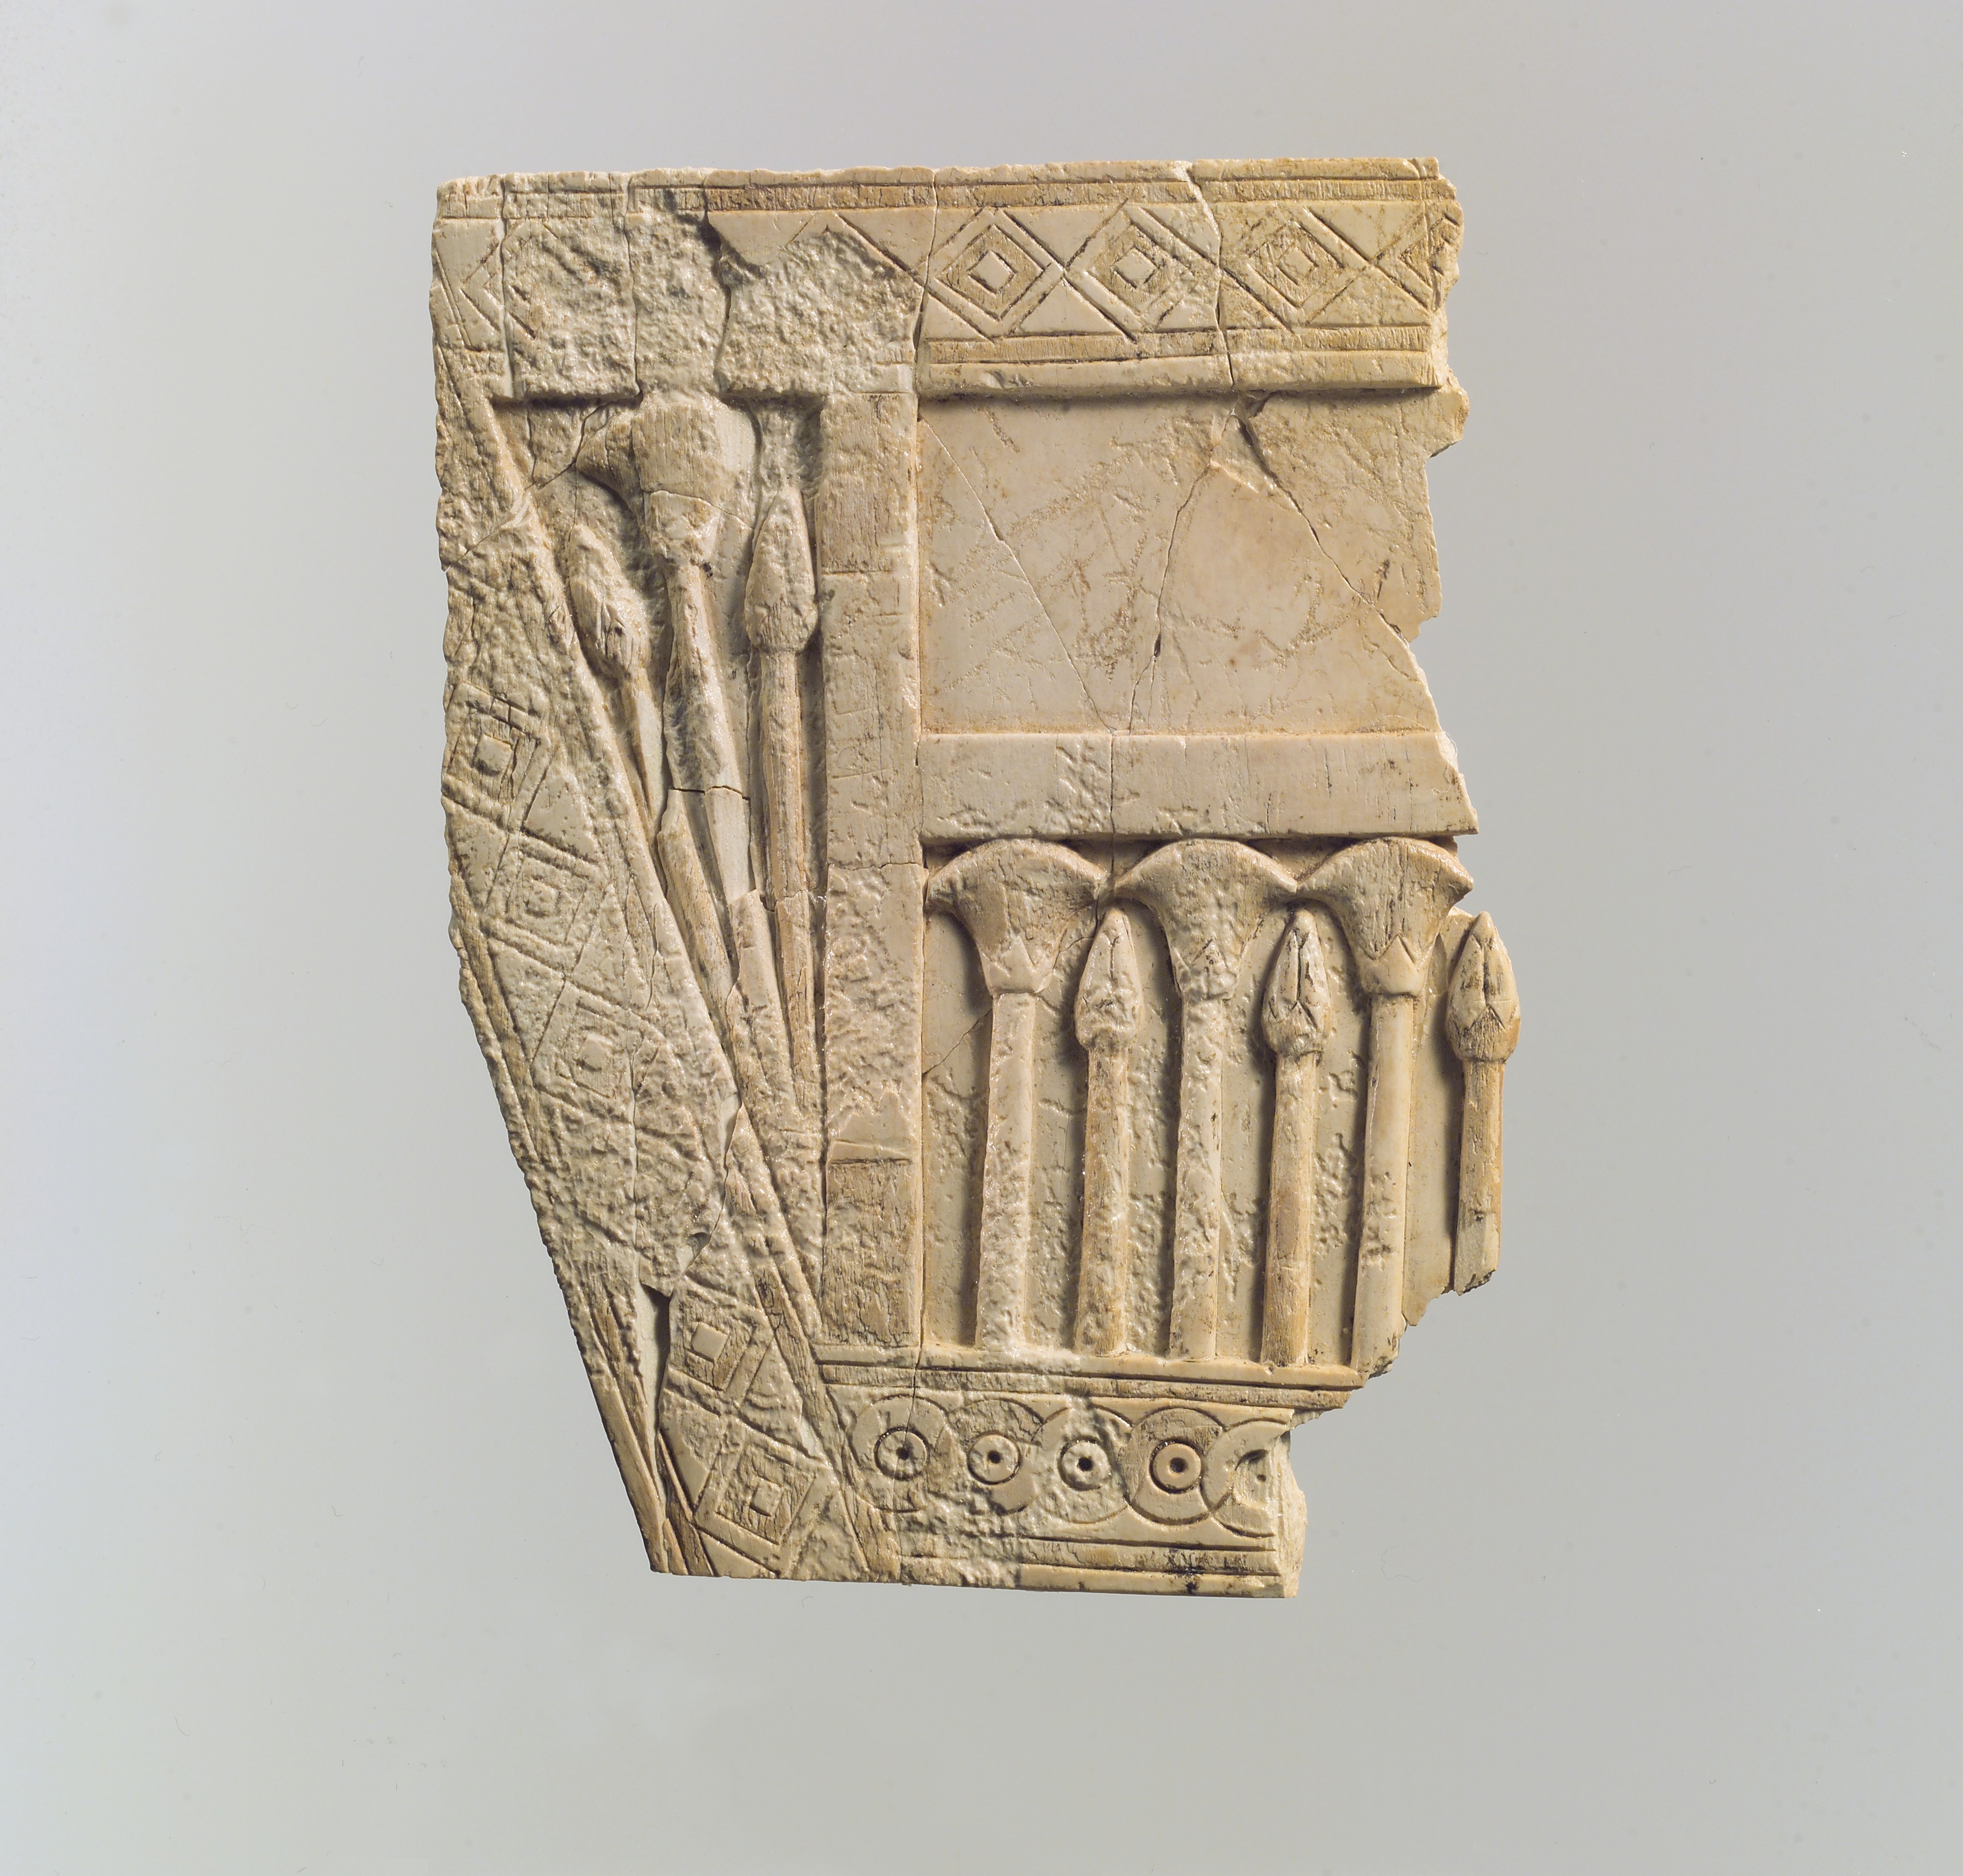 Furniture plaque carved in relief with papyrus buds and flowers